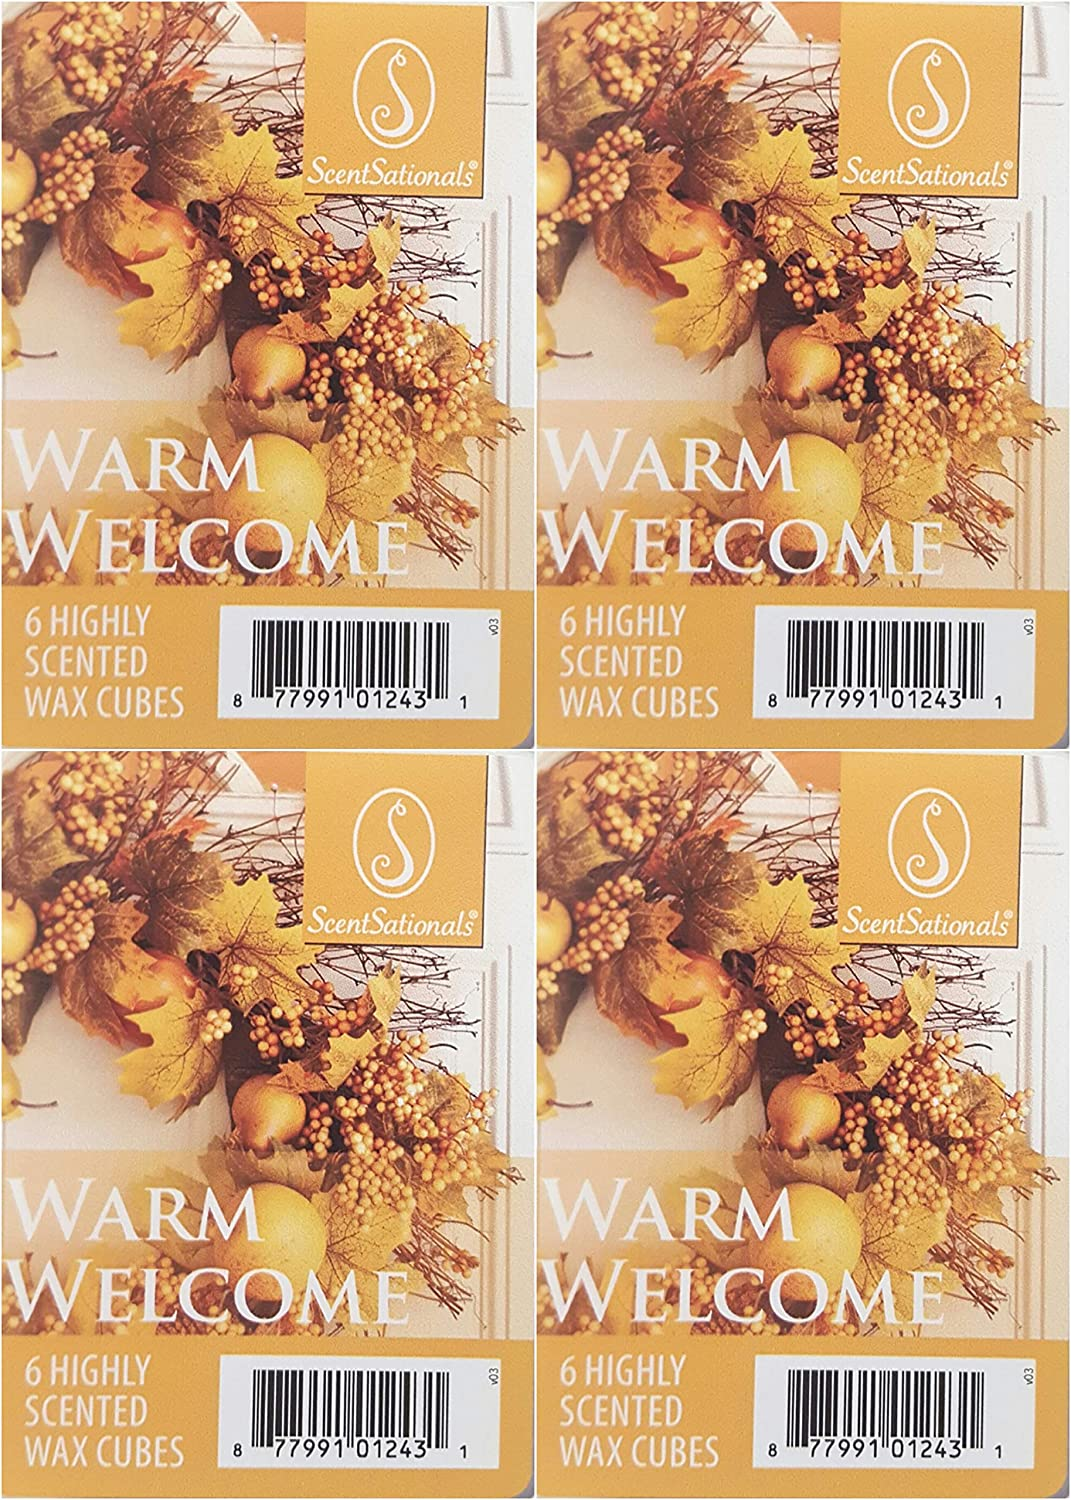 Scentsationals Fusion Warm Welcome Wax Cubes - 4 Packs of 6 Cubes Each